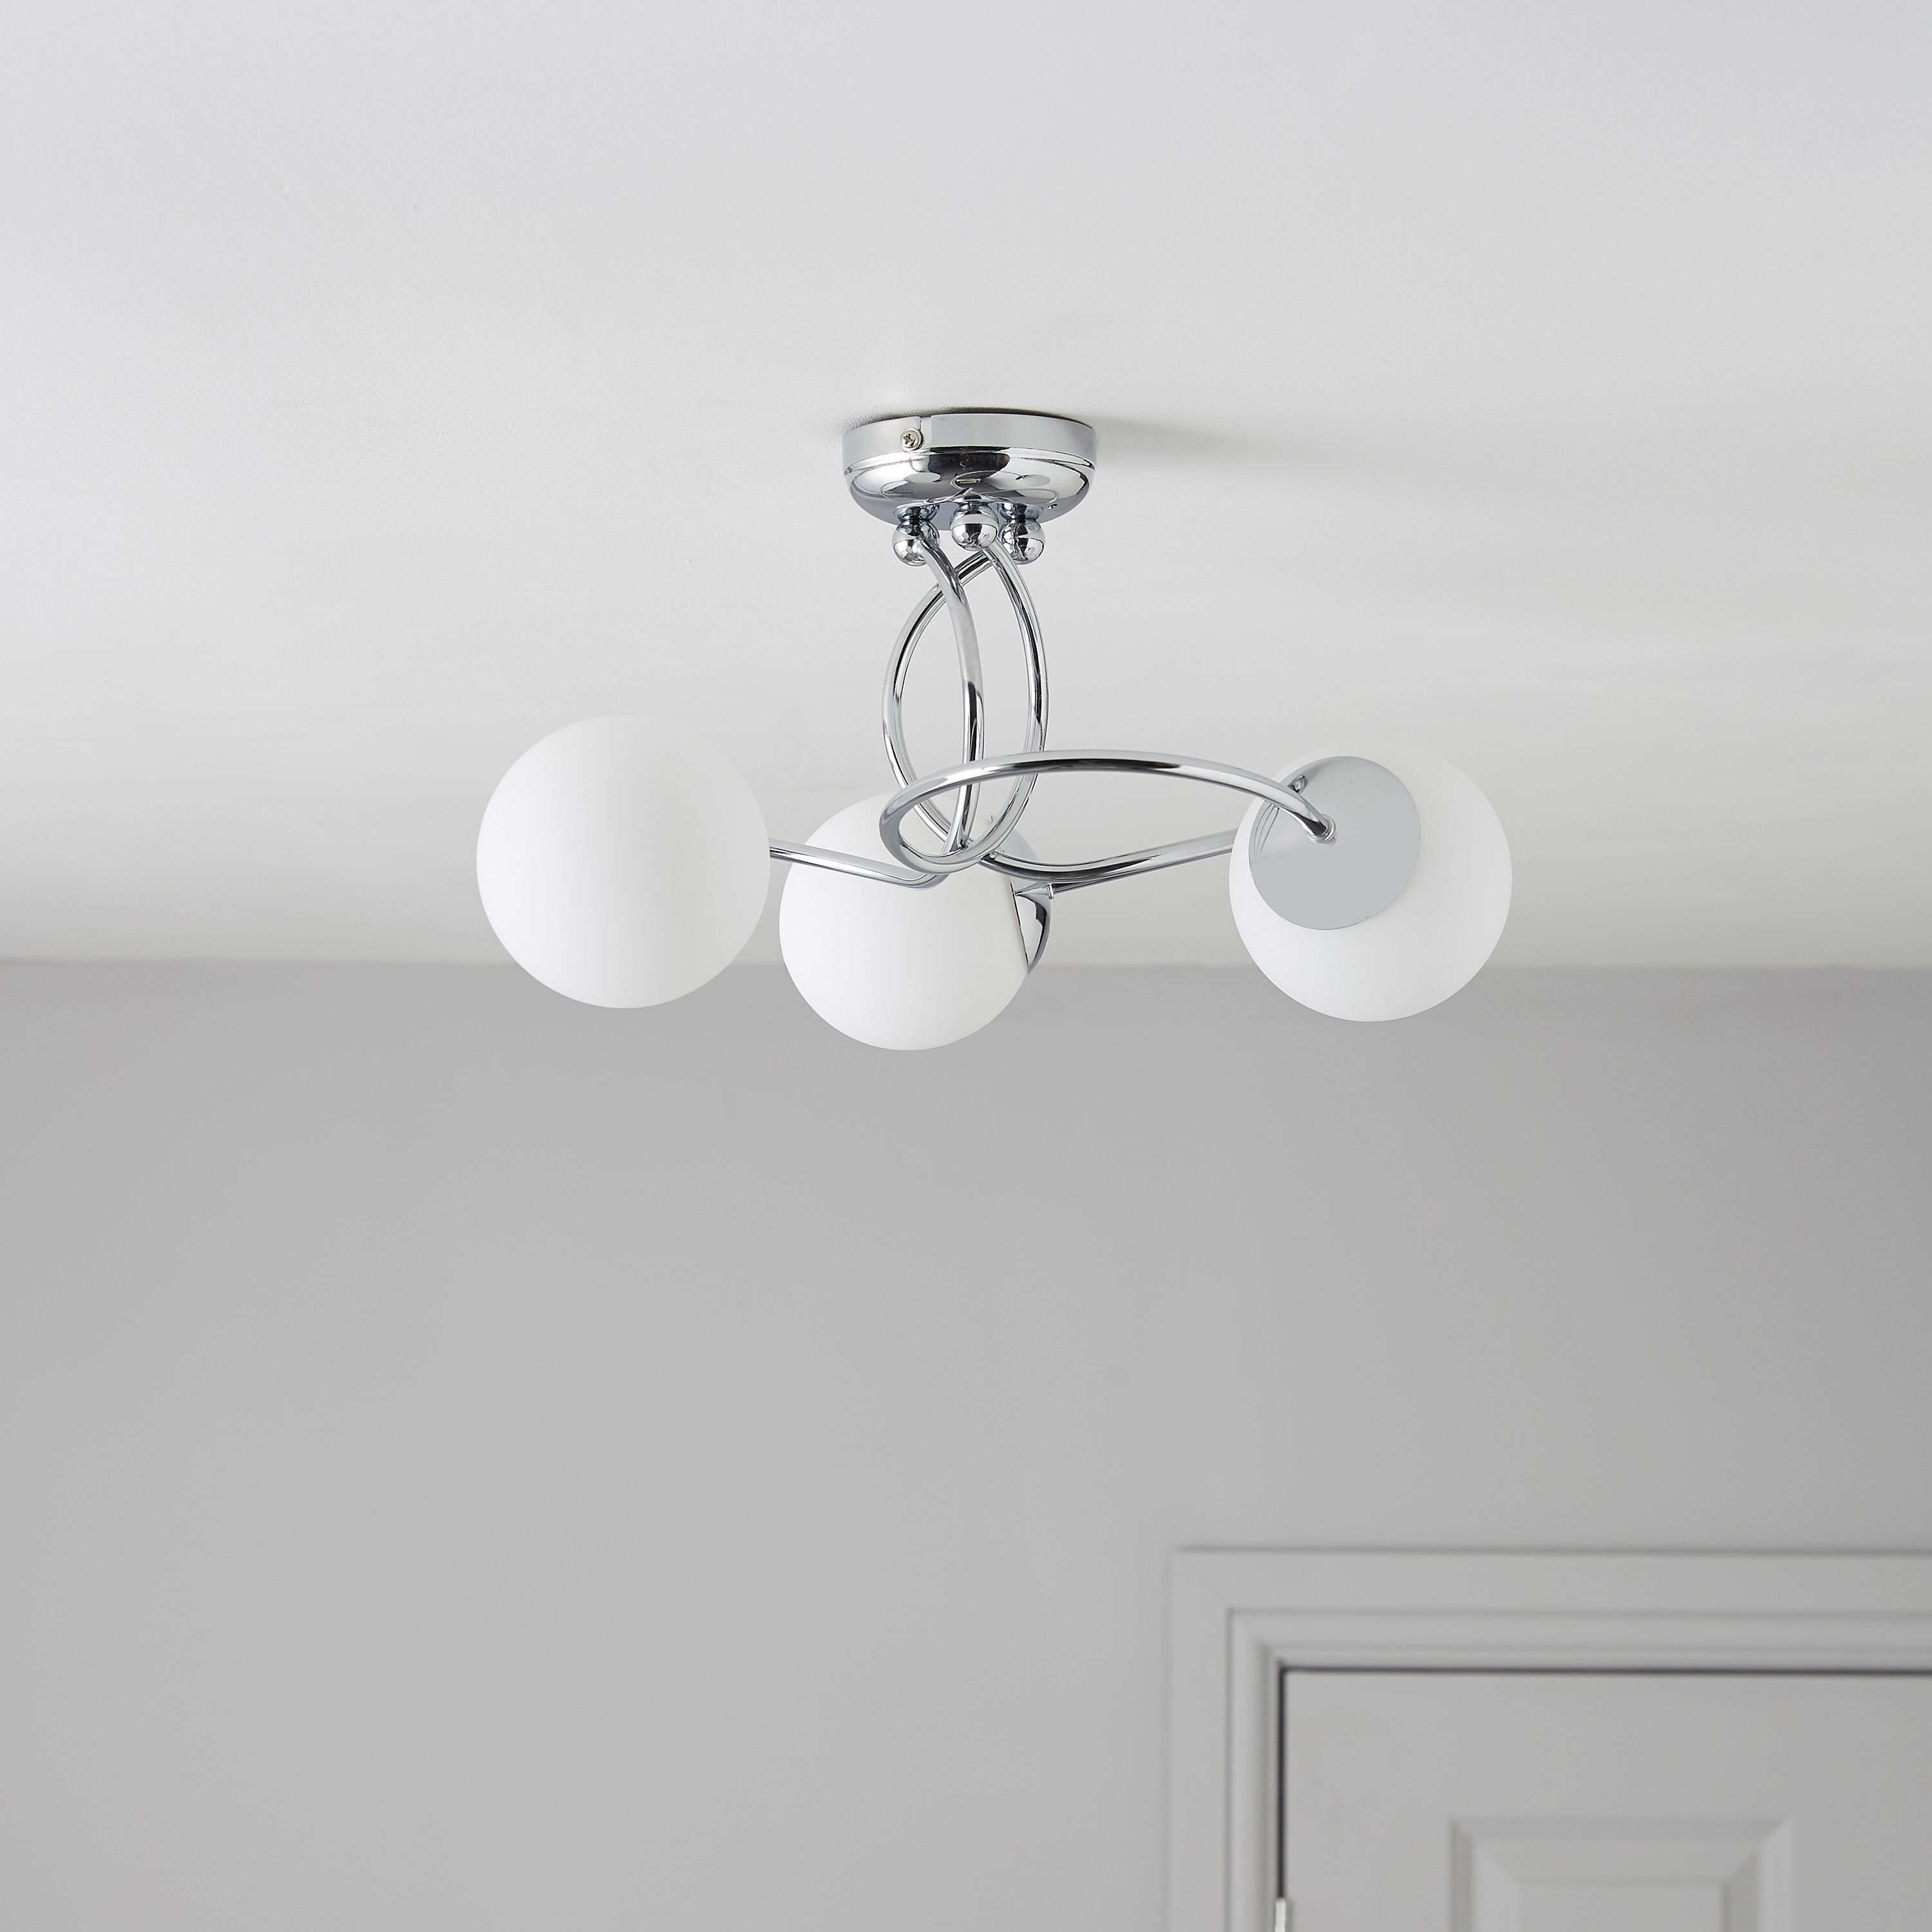 Best Colours Cygnus 3 Semi Flush Ceiling Light Departments Diy At B Q Decorate Me Semi Flush With Pictures